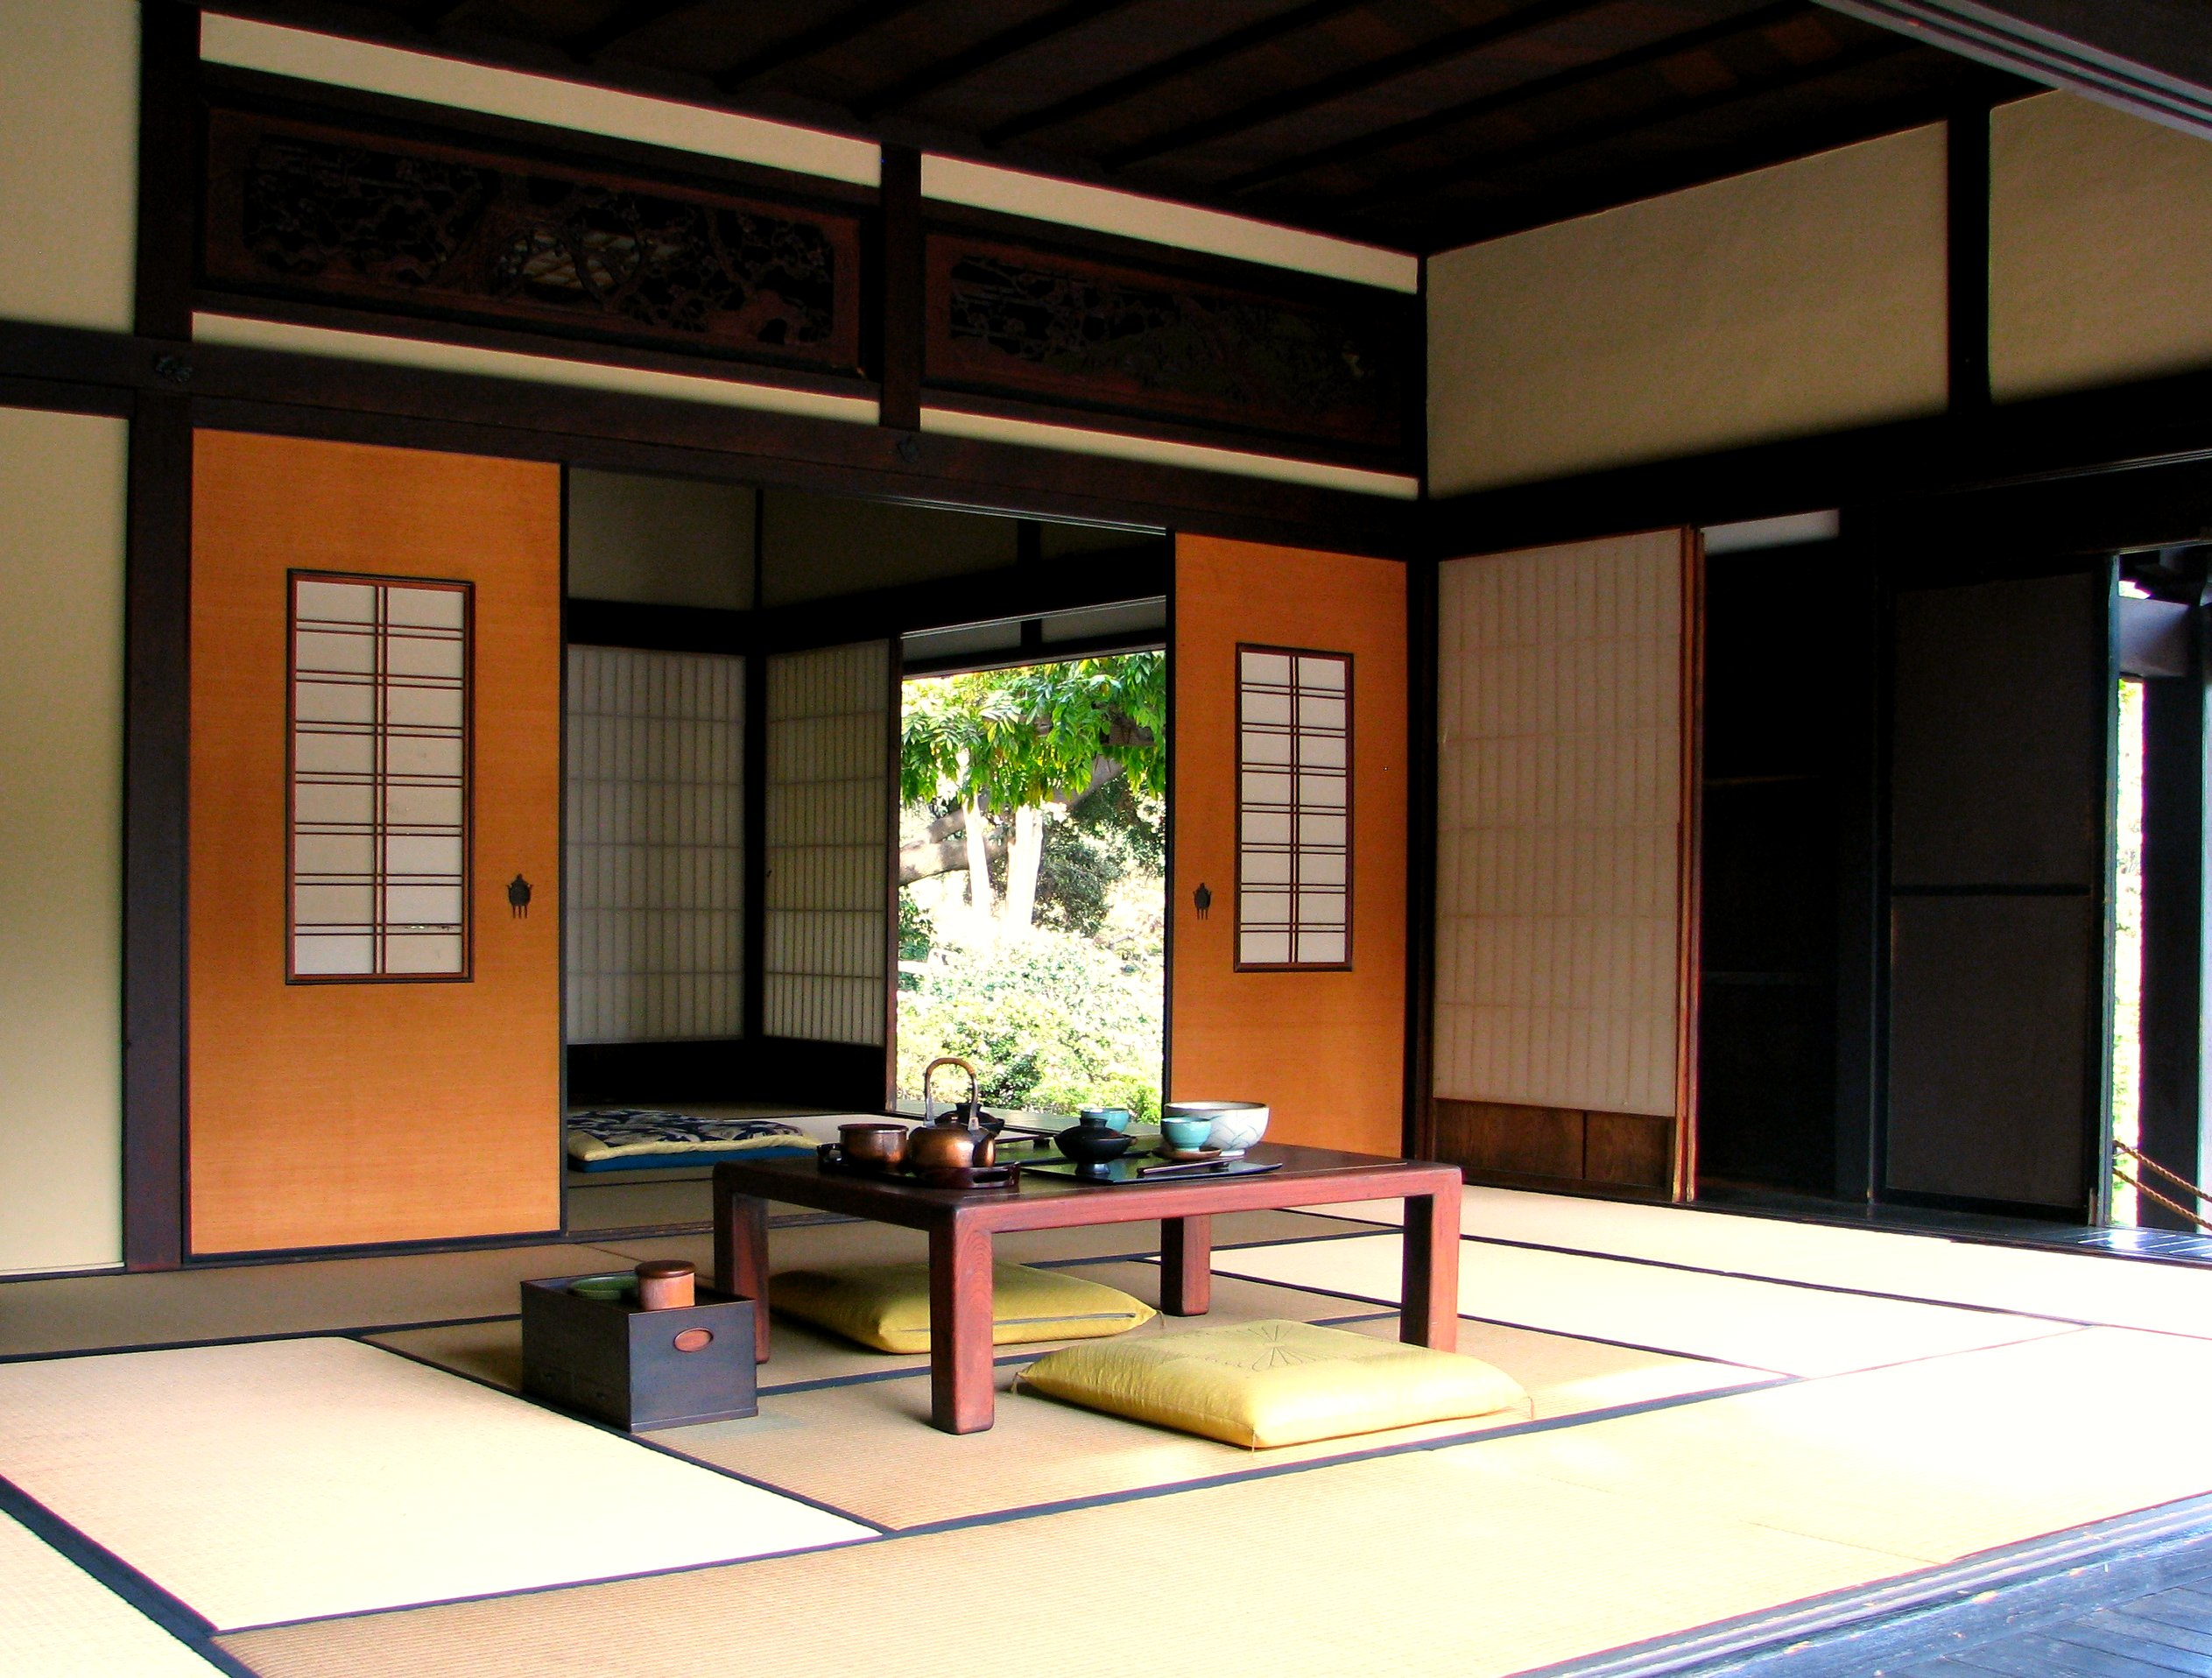 file:traditional japanese home (3052408416) - wikimedia commons